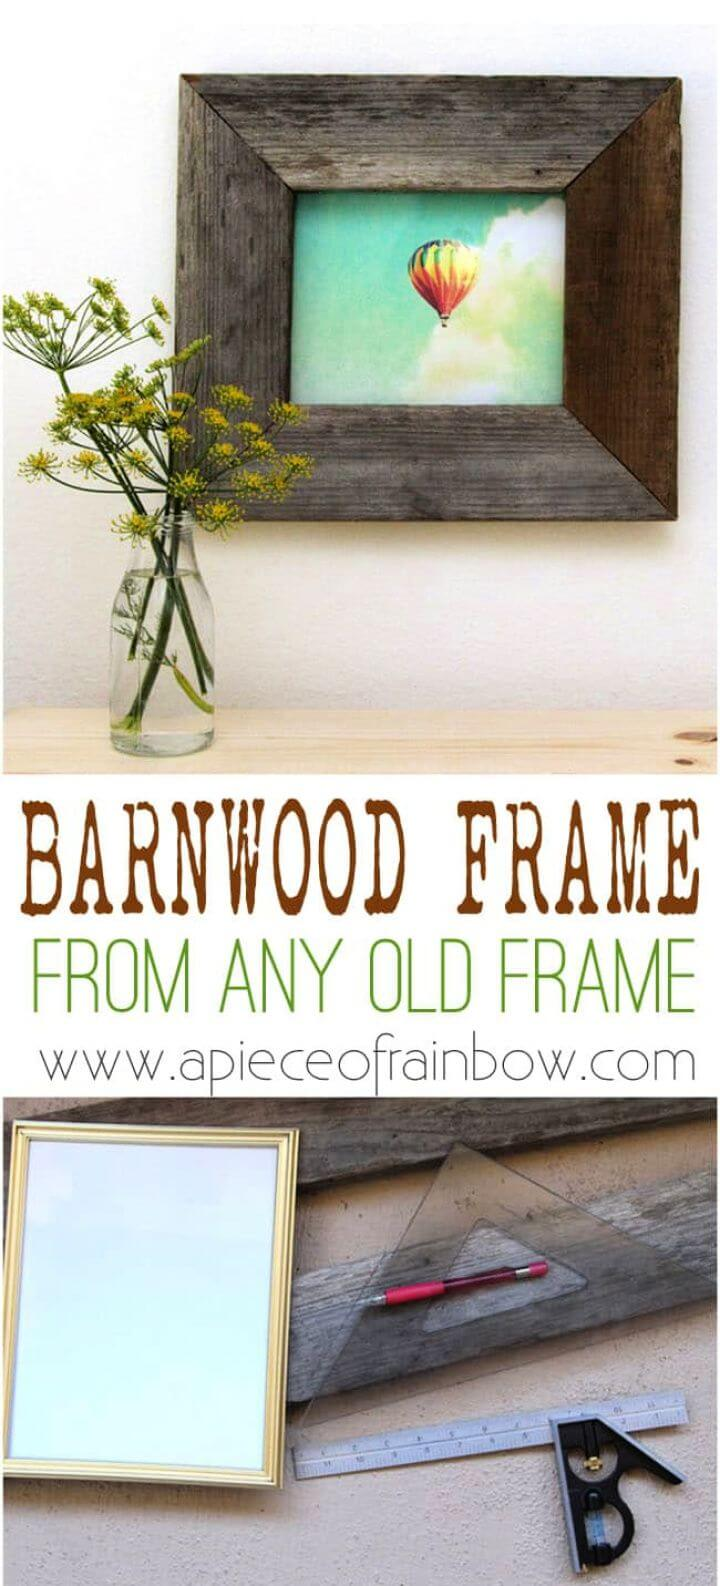 Old Picture Frame Into Barn Wood Frame